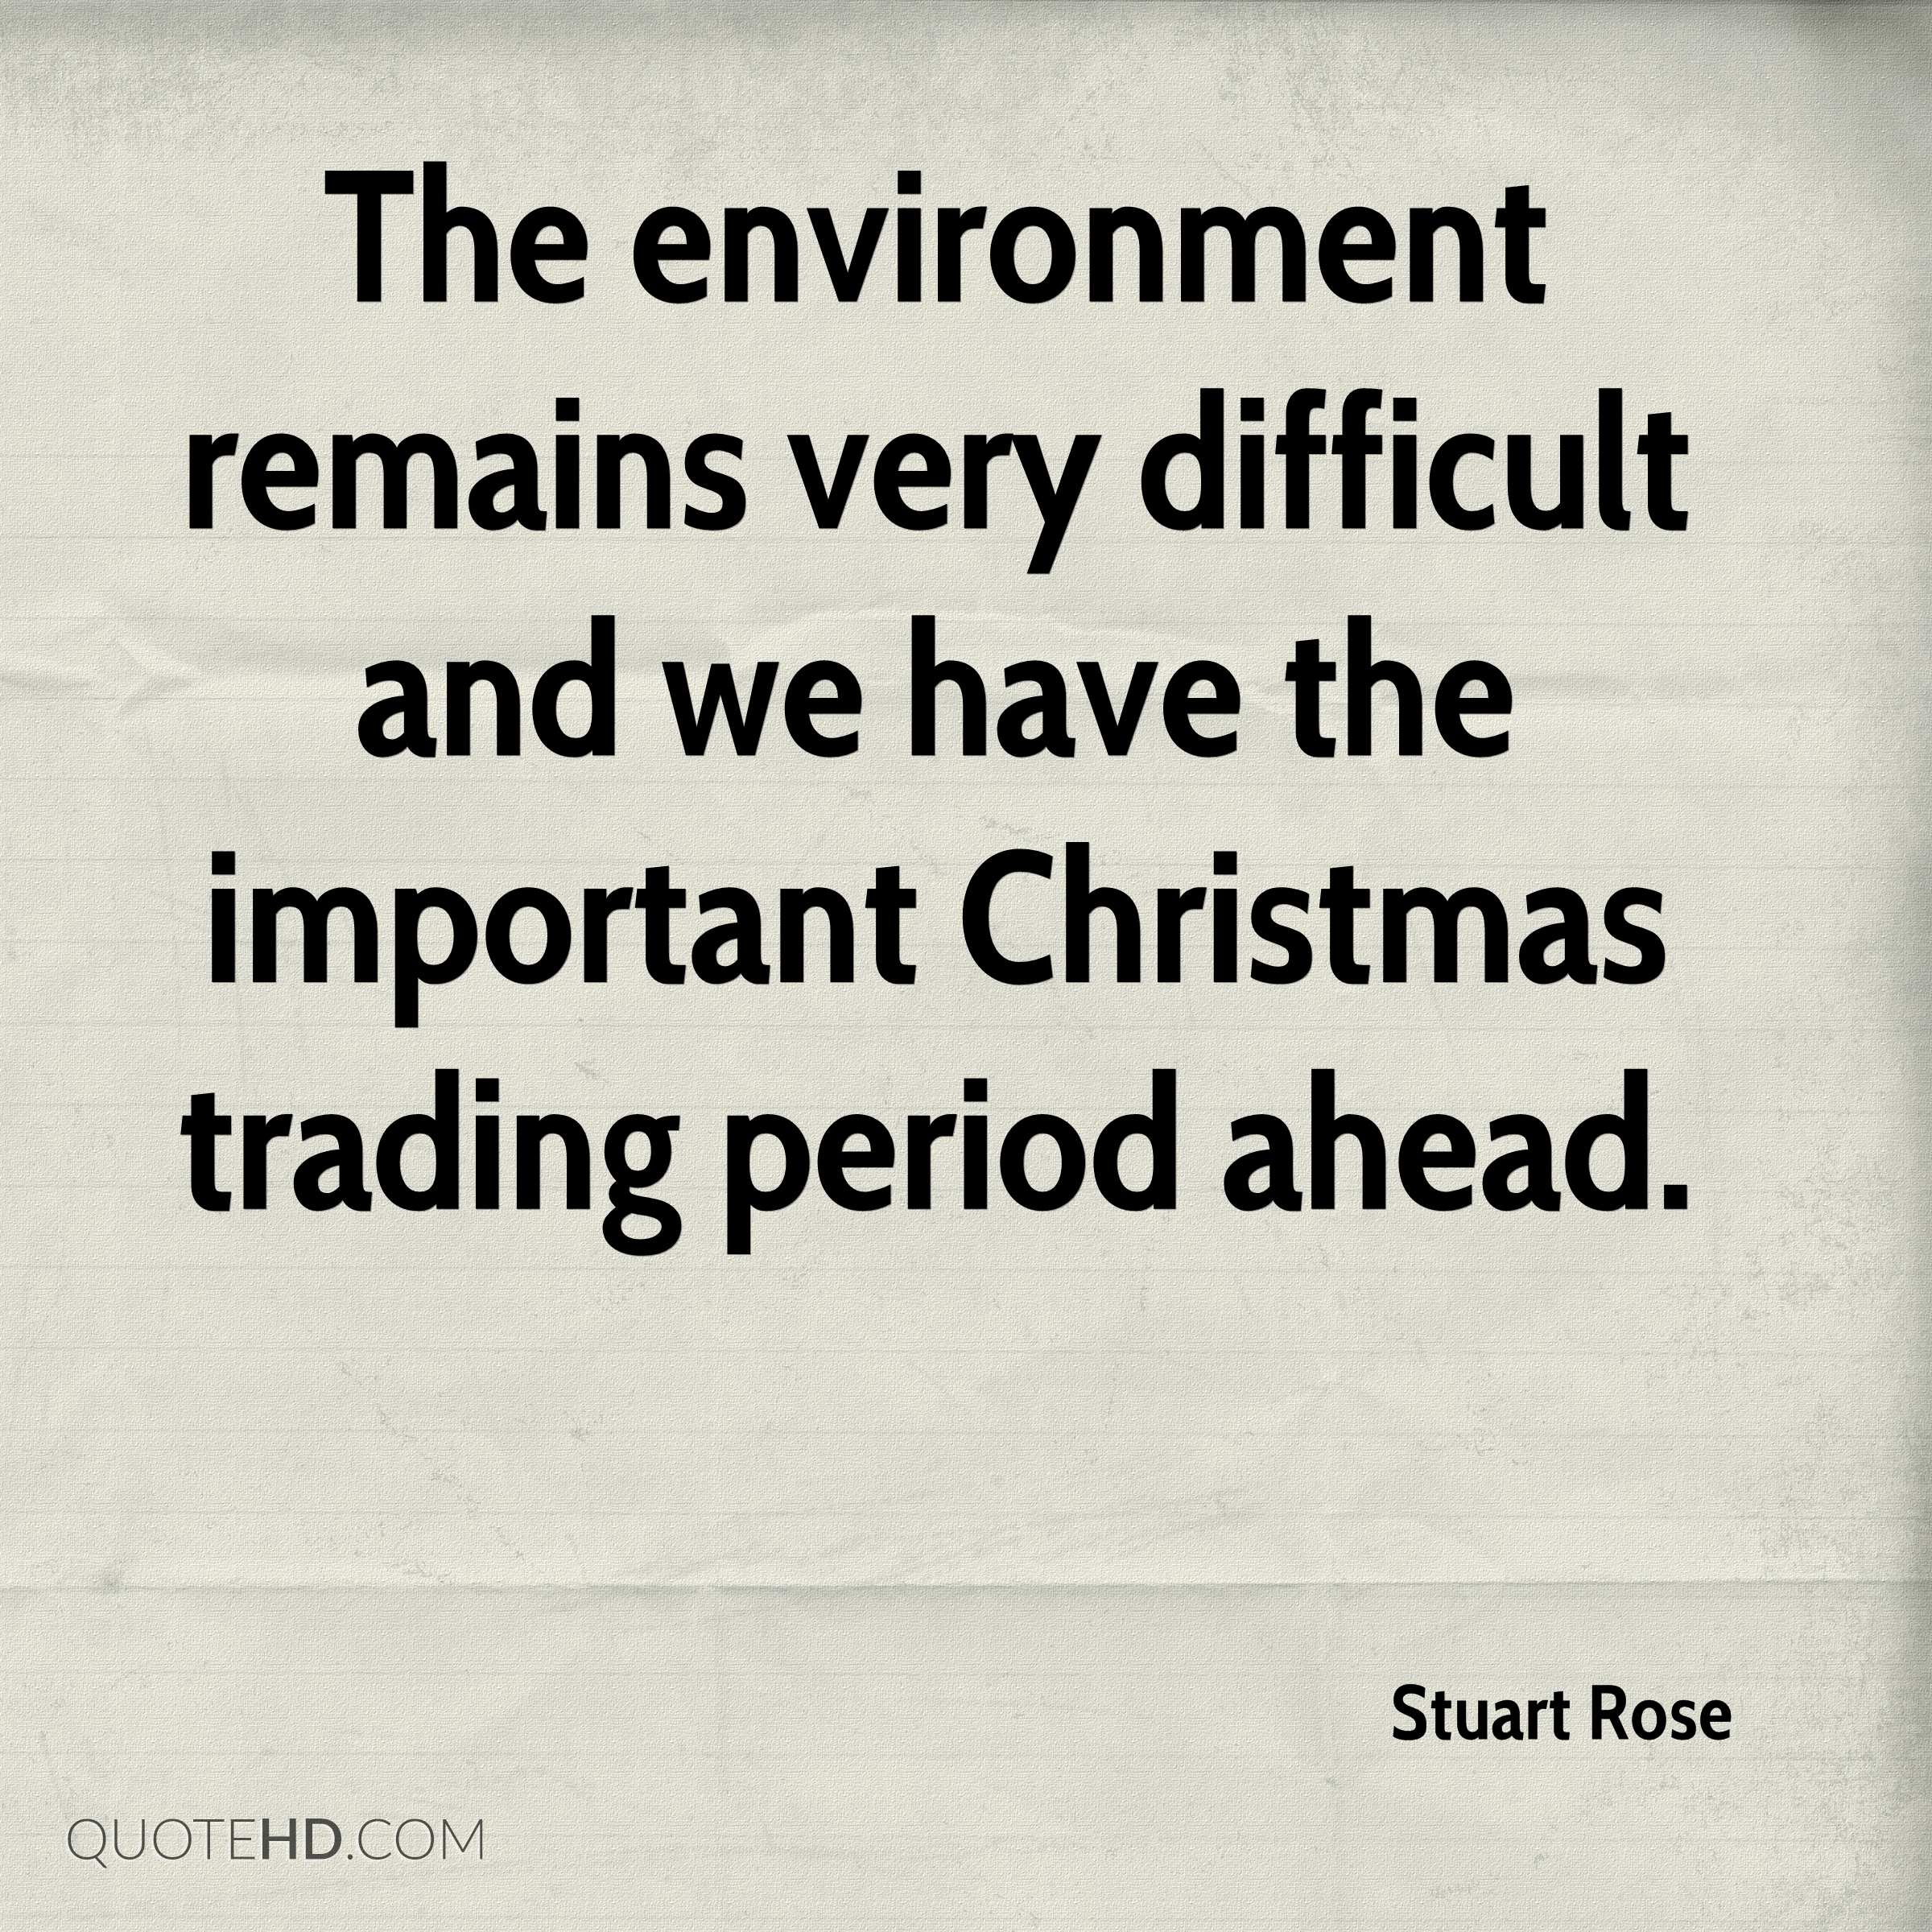 The environment remains very difficult and we have the important Christmas trading period ahead.